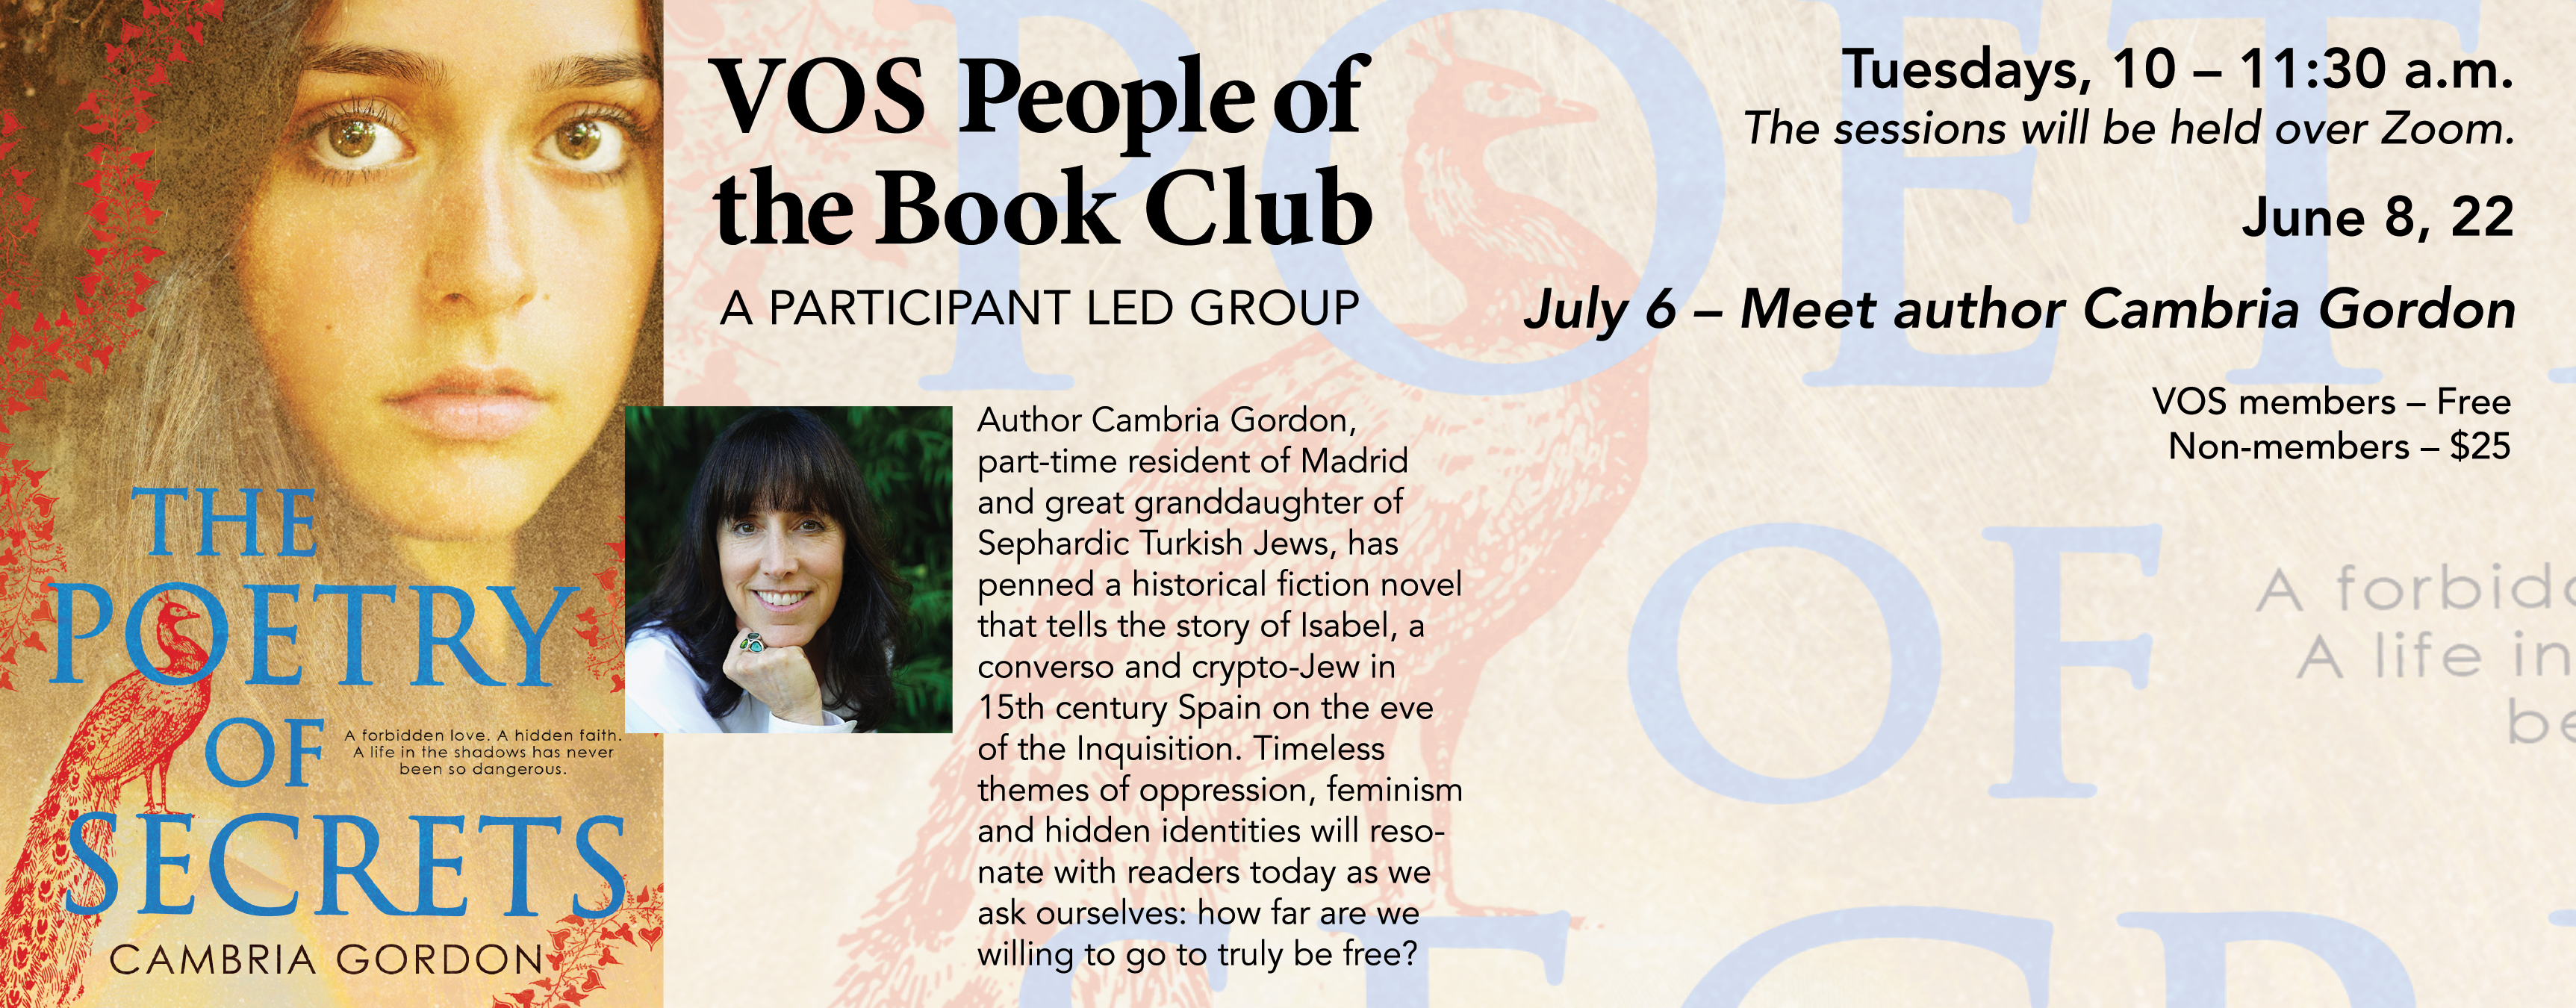 "<a href=""https://www.vosla.org/form/people-of-the-book-club---Poetry""